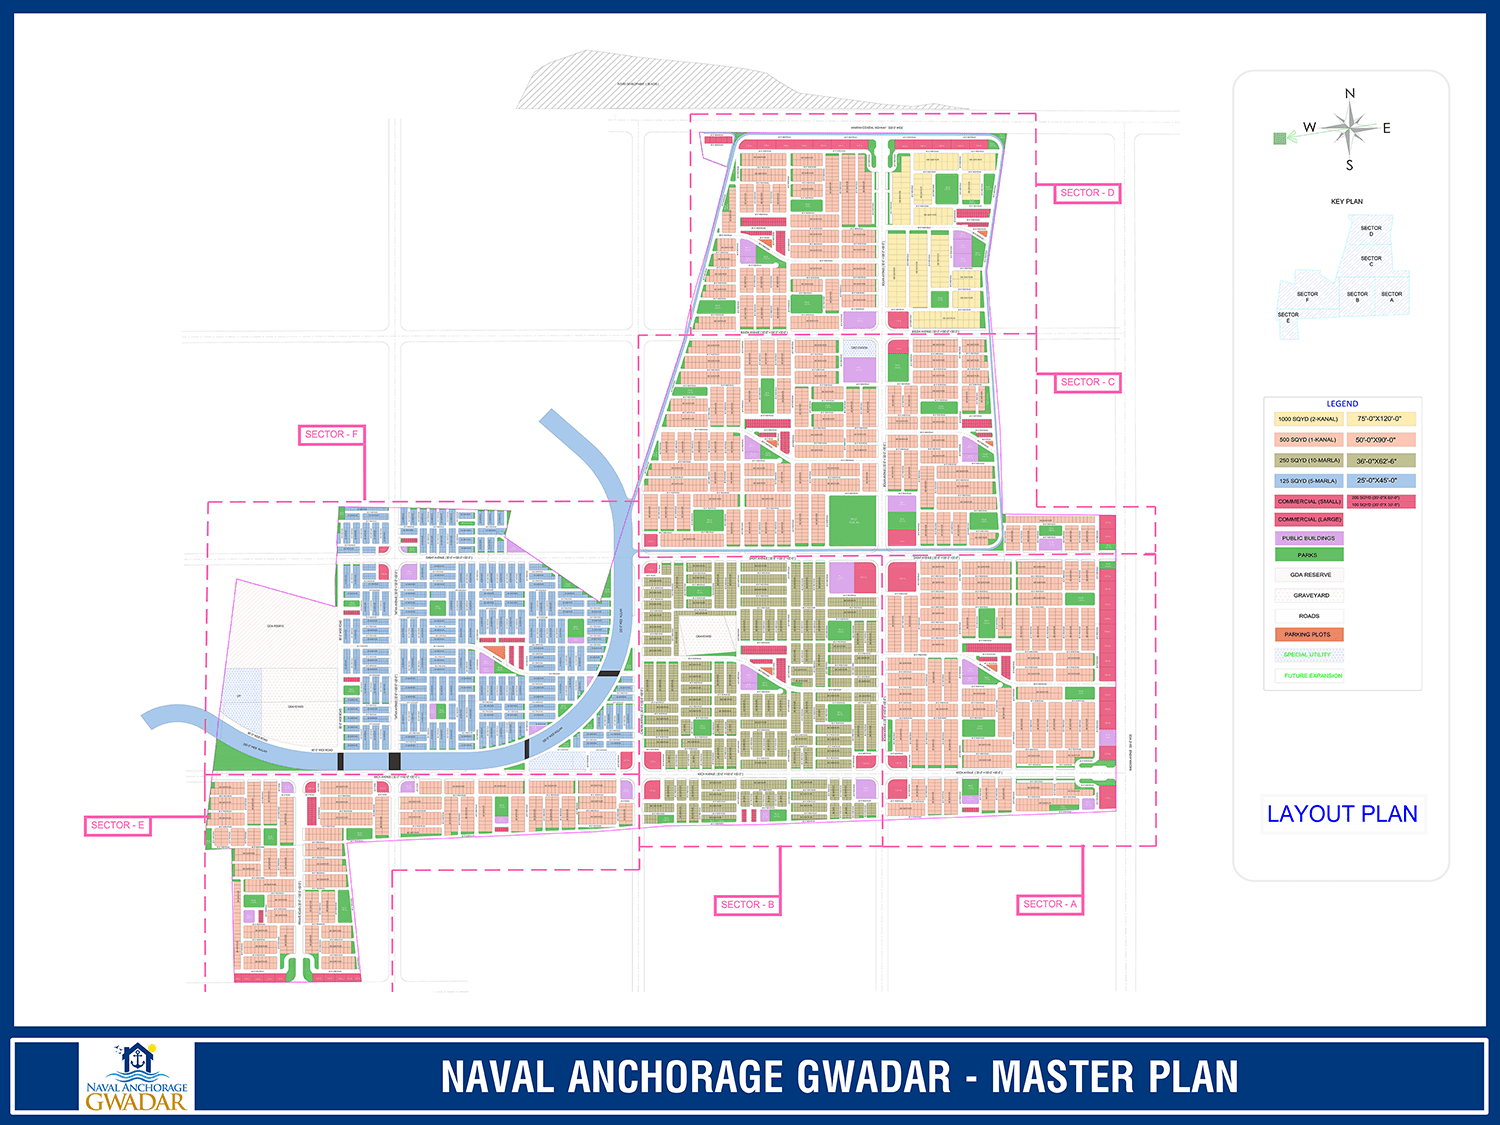 Naval Anchorage Gwadar Map